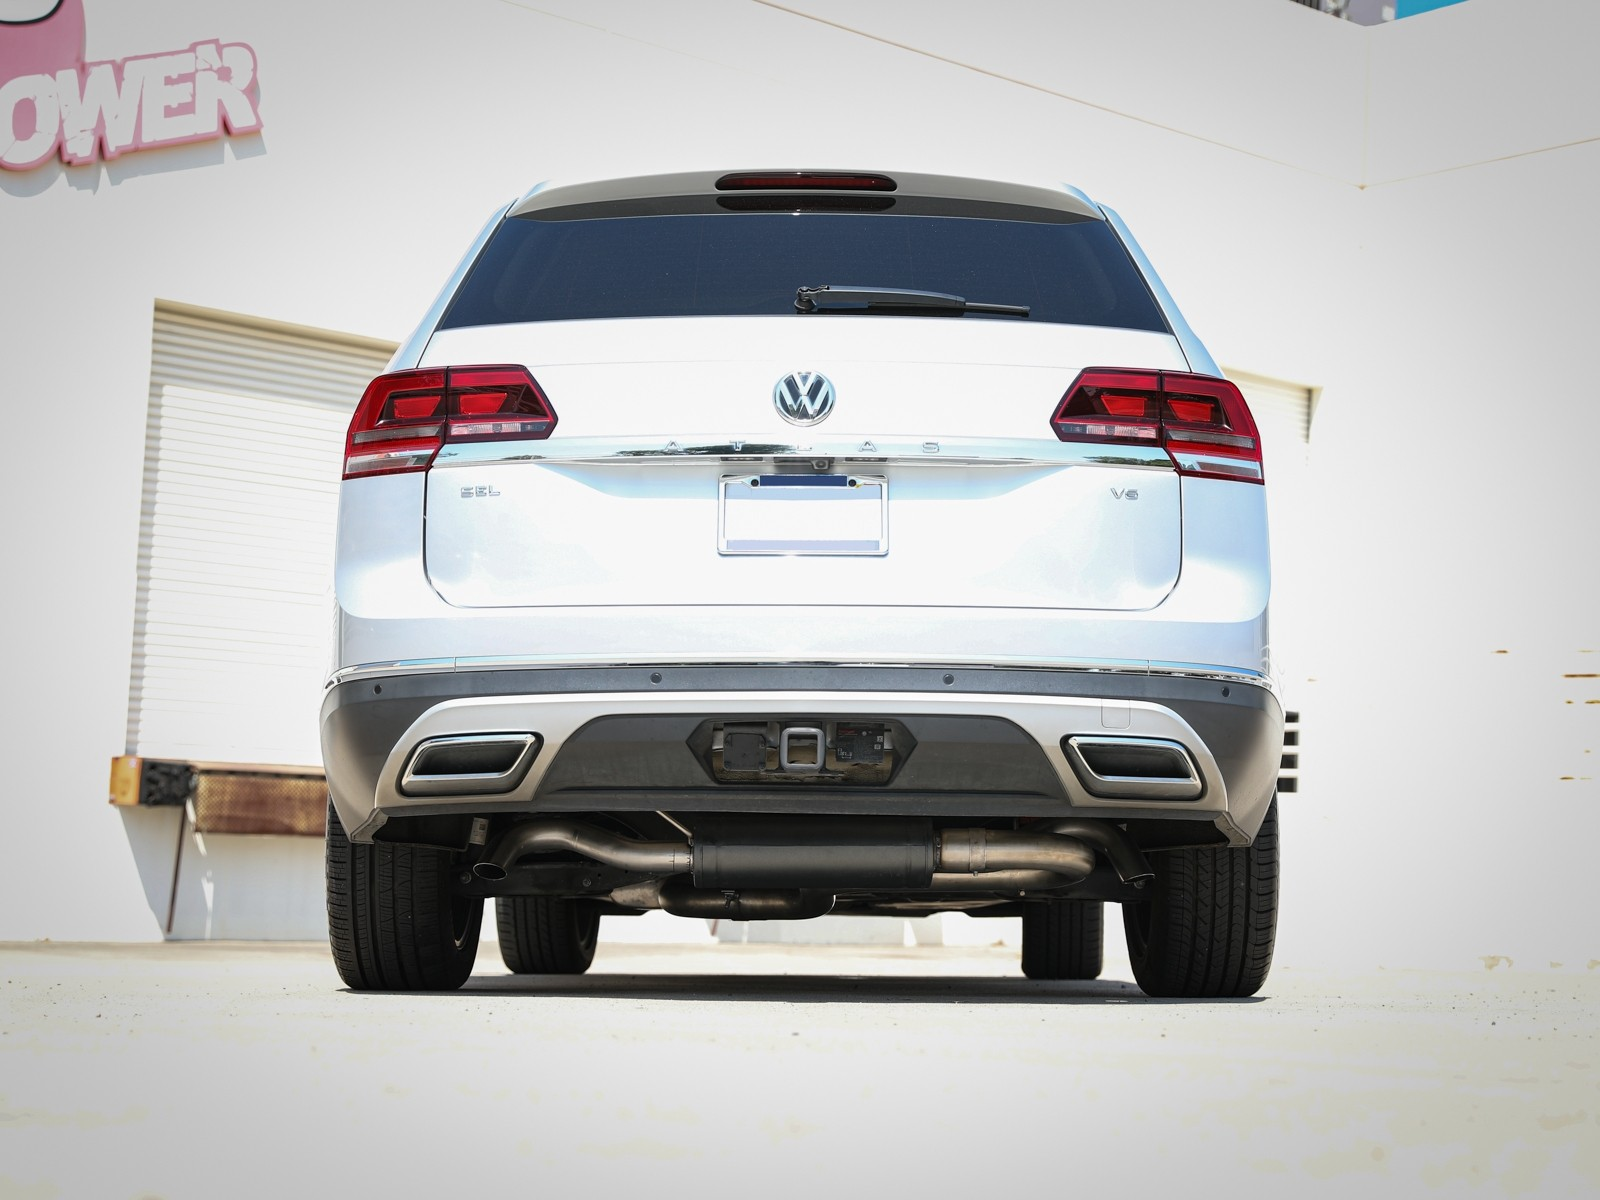 mach force xp 3 304 stainless steel cat back exhaust system